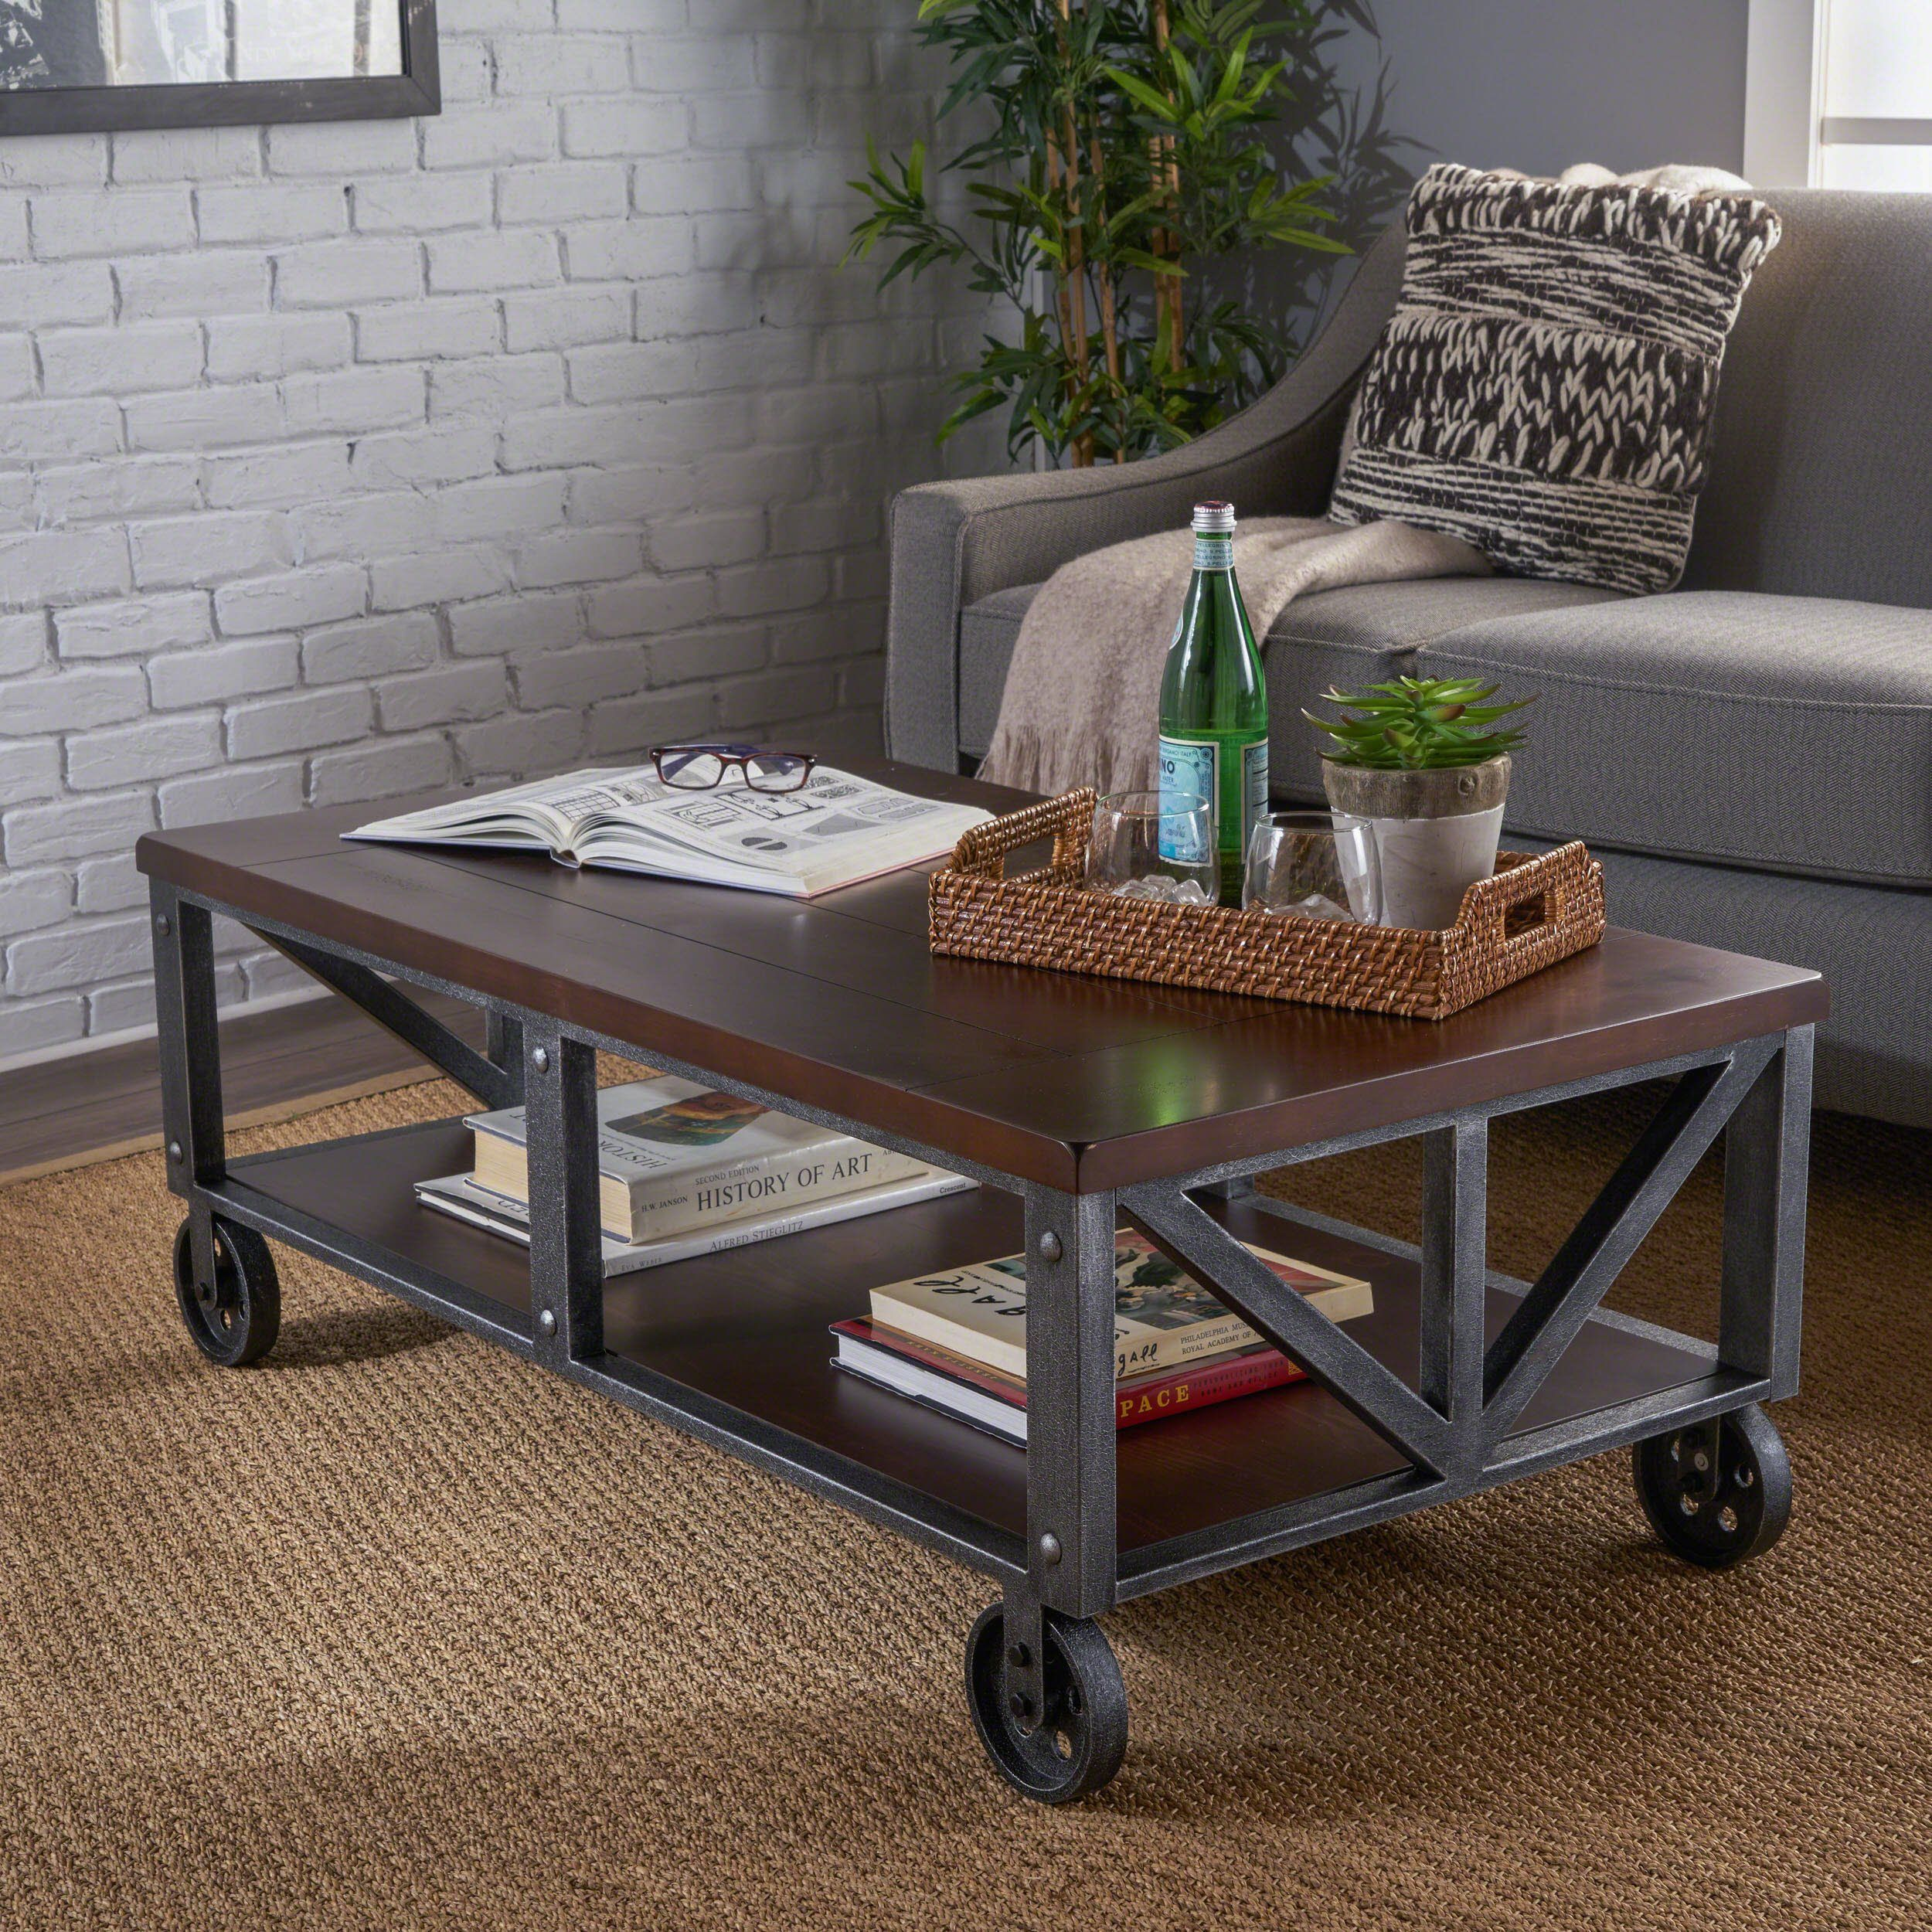 Dresden industrial faux wood coffee table with antique